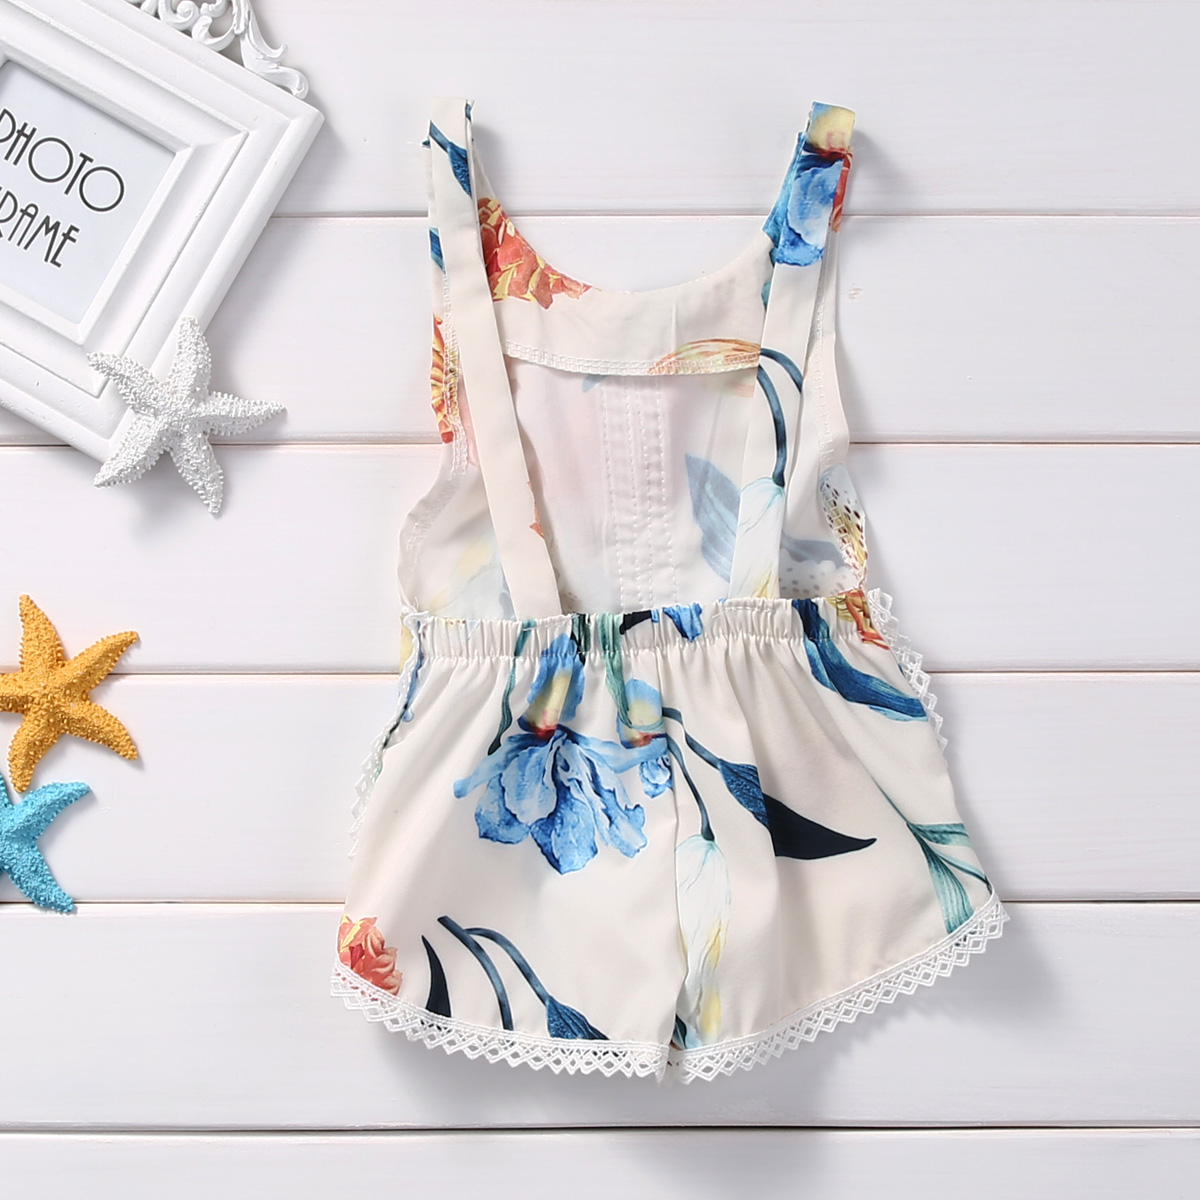 Cotton-Newborn-Kids-Baby-Girl-Sleveless-Lace-Romper-Lily-printing-Jumpsuit-Clothes-Sunsuit-Outfits-3